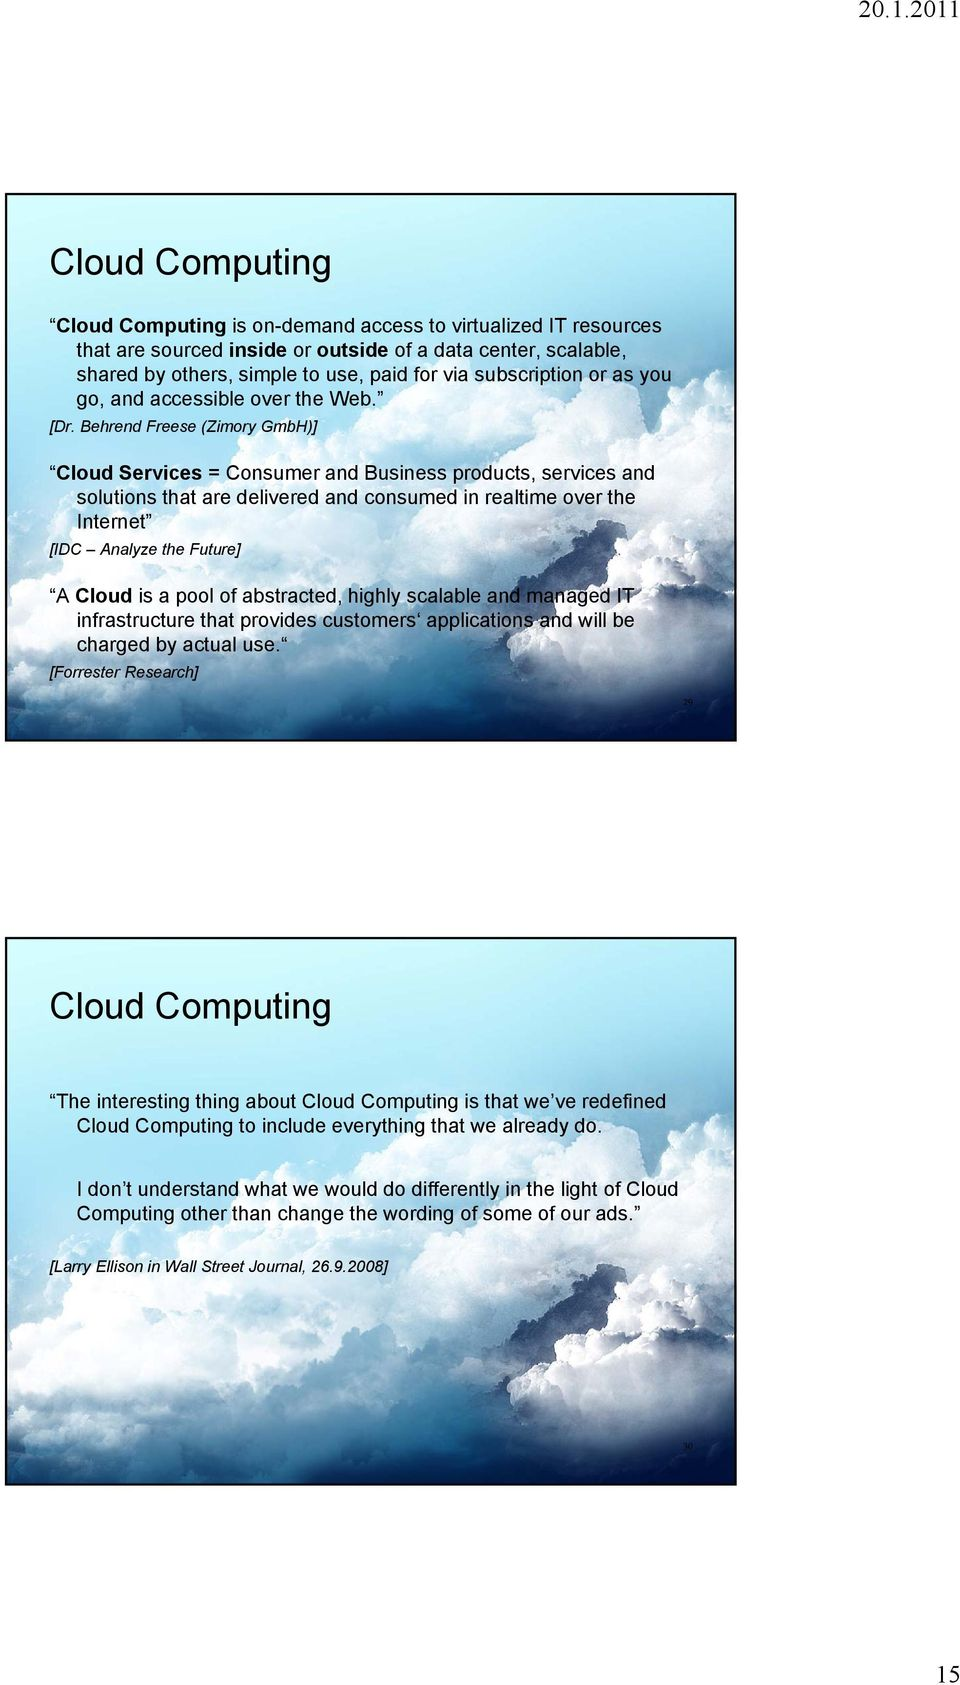 Behrend Freese (Zimory GmbH)] Cloud Services = Consumer and Business products, services and solutions that are delivered and consumed in realtime over the Internet [IDC Analyze the Future] A Cloud is